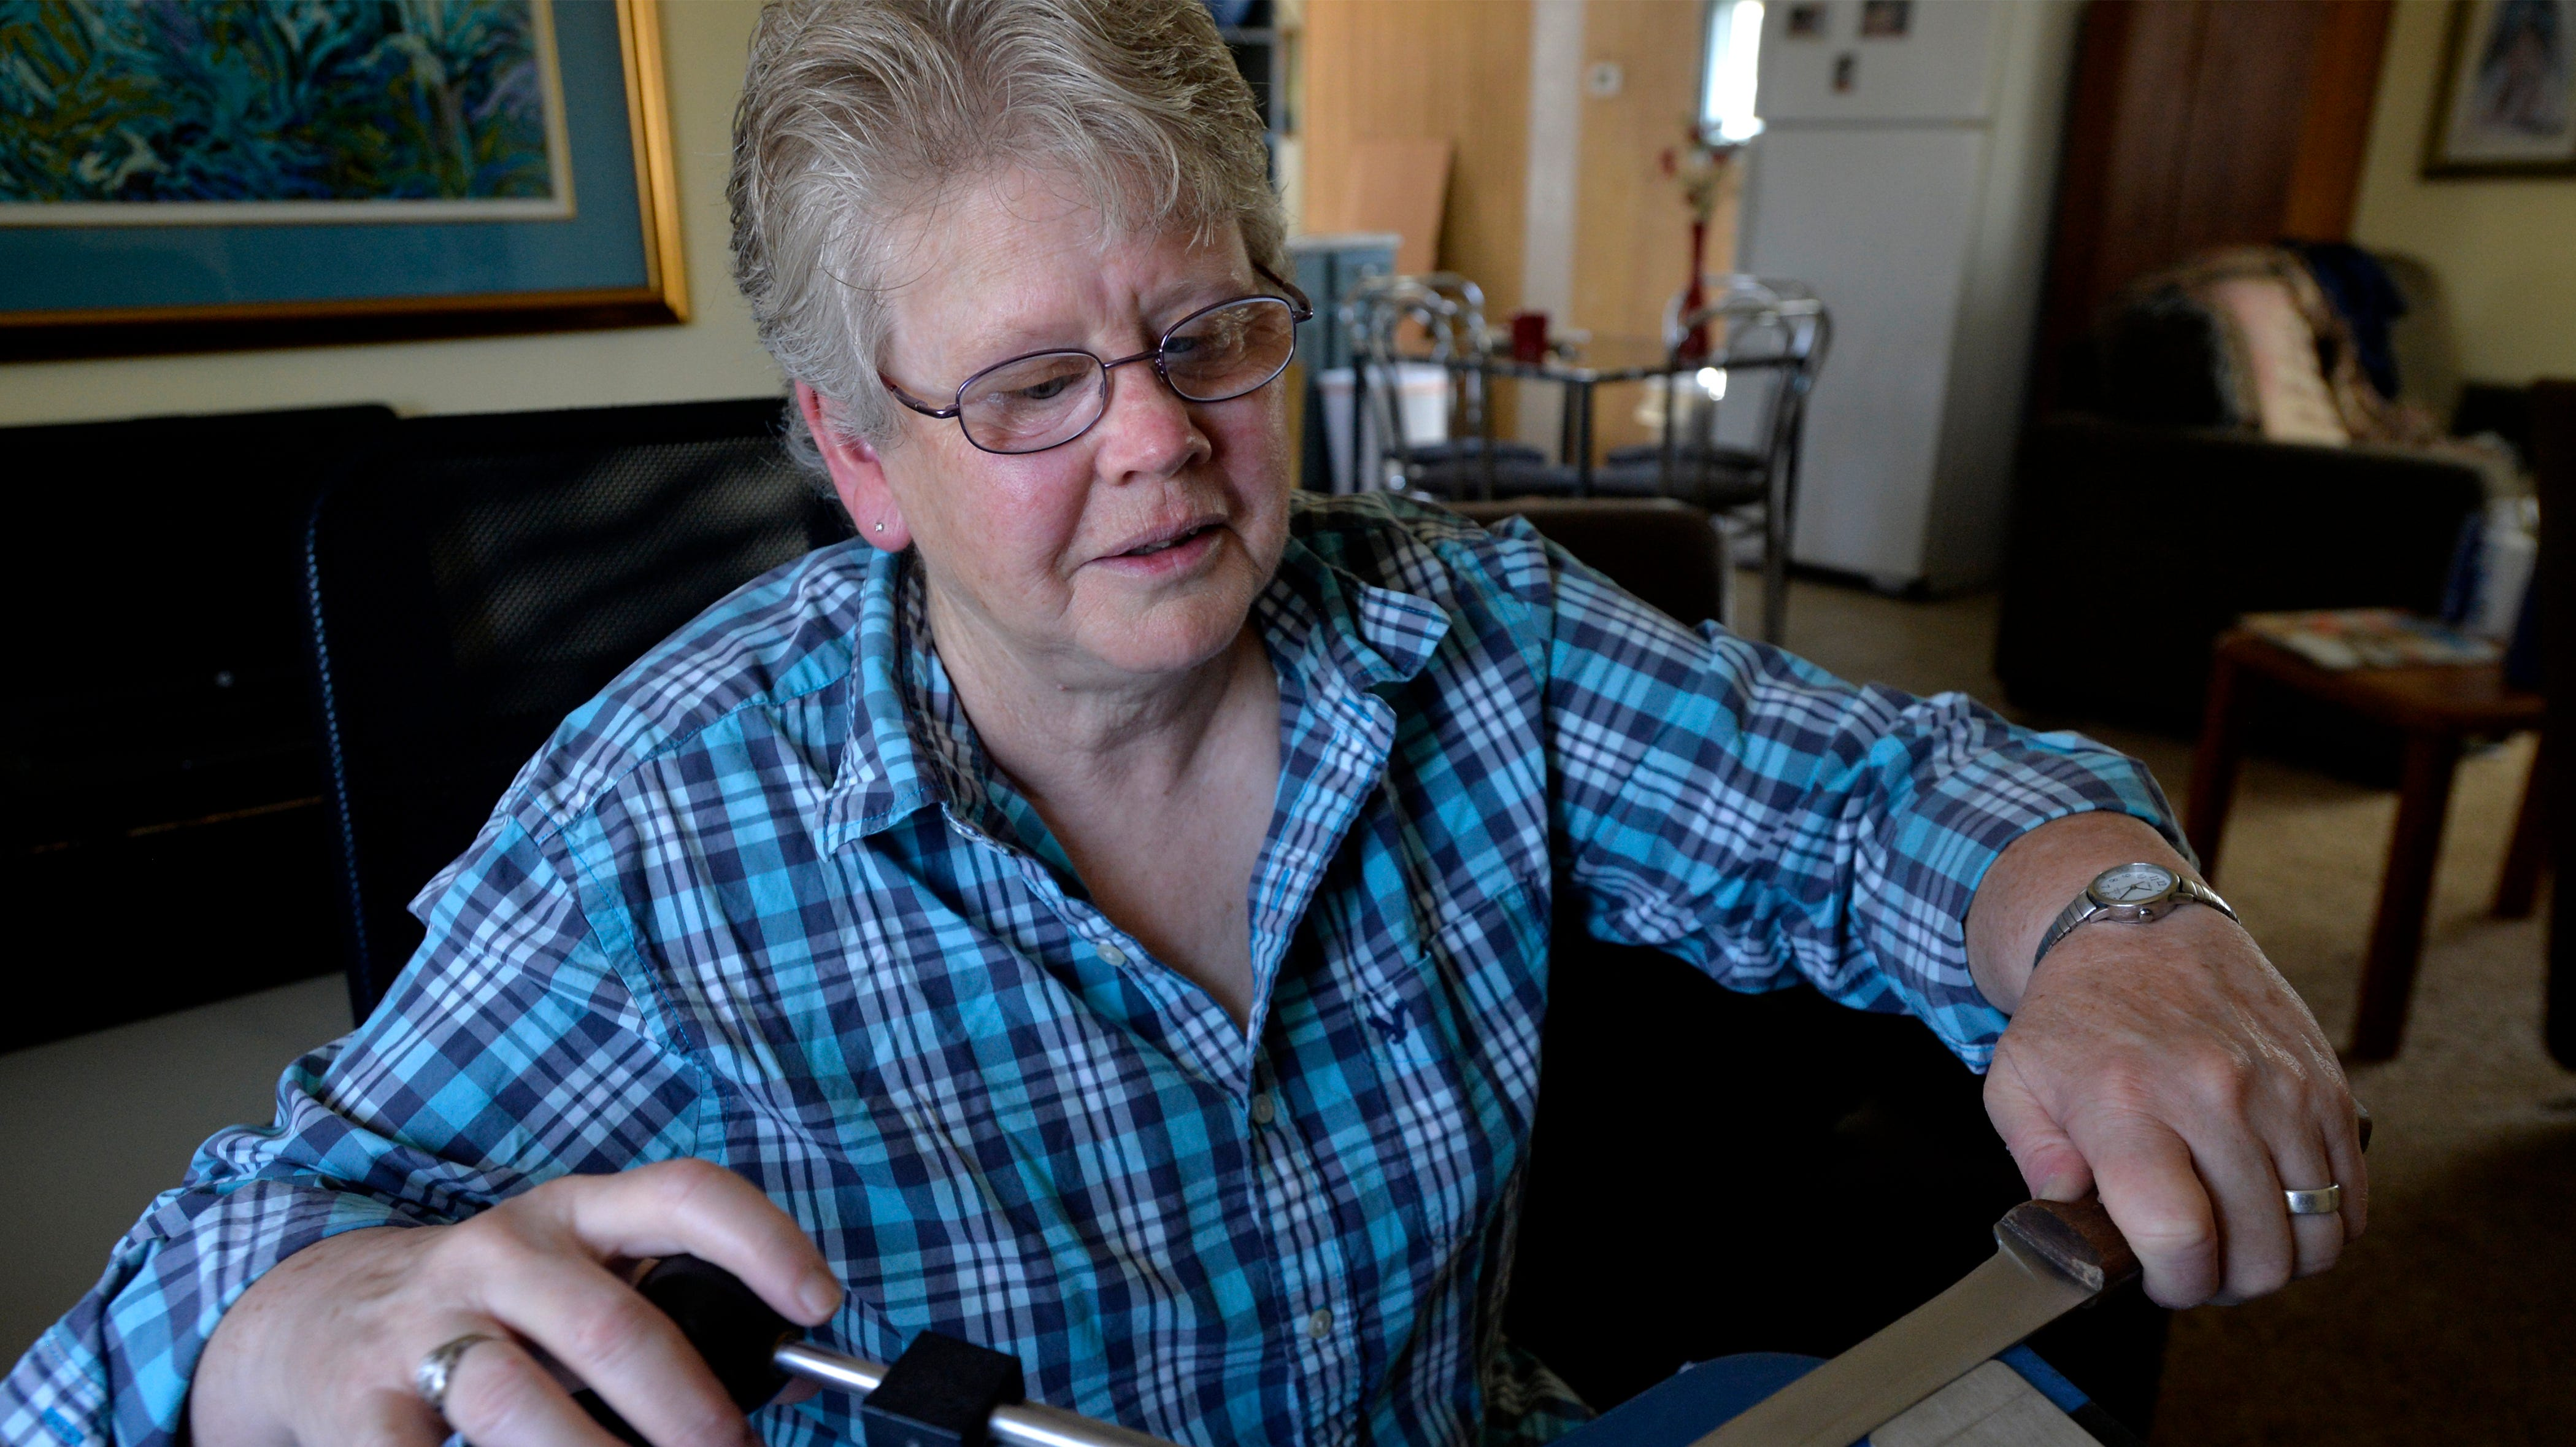 Sonja Bragstad operates a knife sharpening business, The Finer Edge by Sonja, in Black Eagle.  She demonstrates sharpening a knife using the Edge Pro fixed angle knife sharpener.